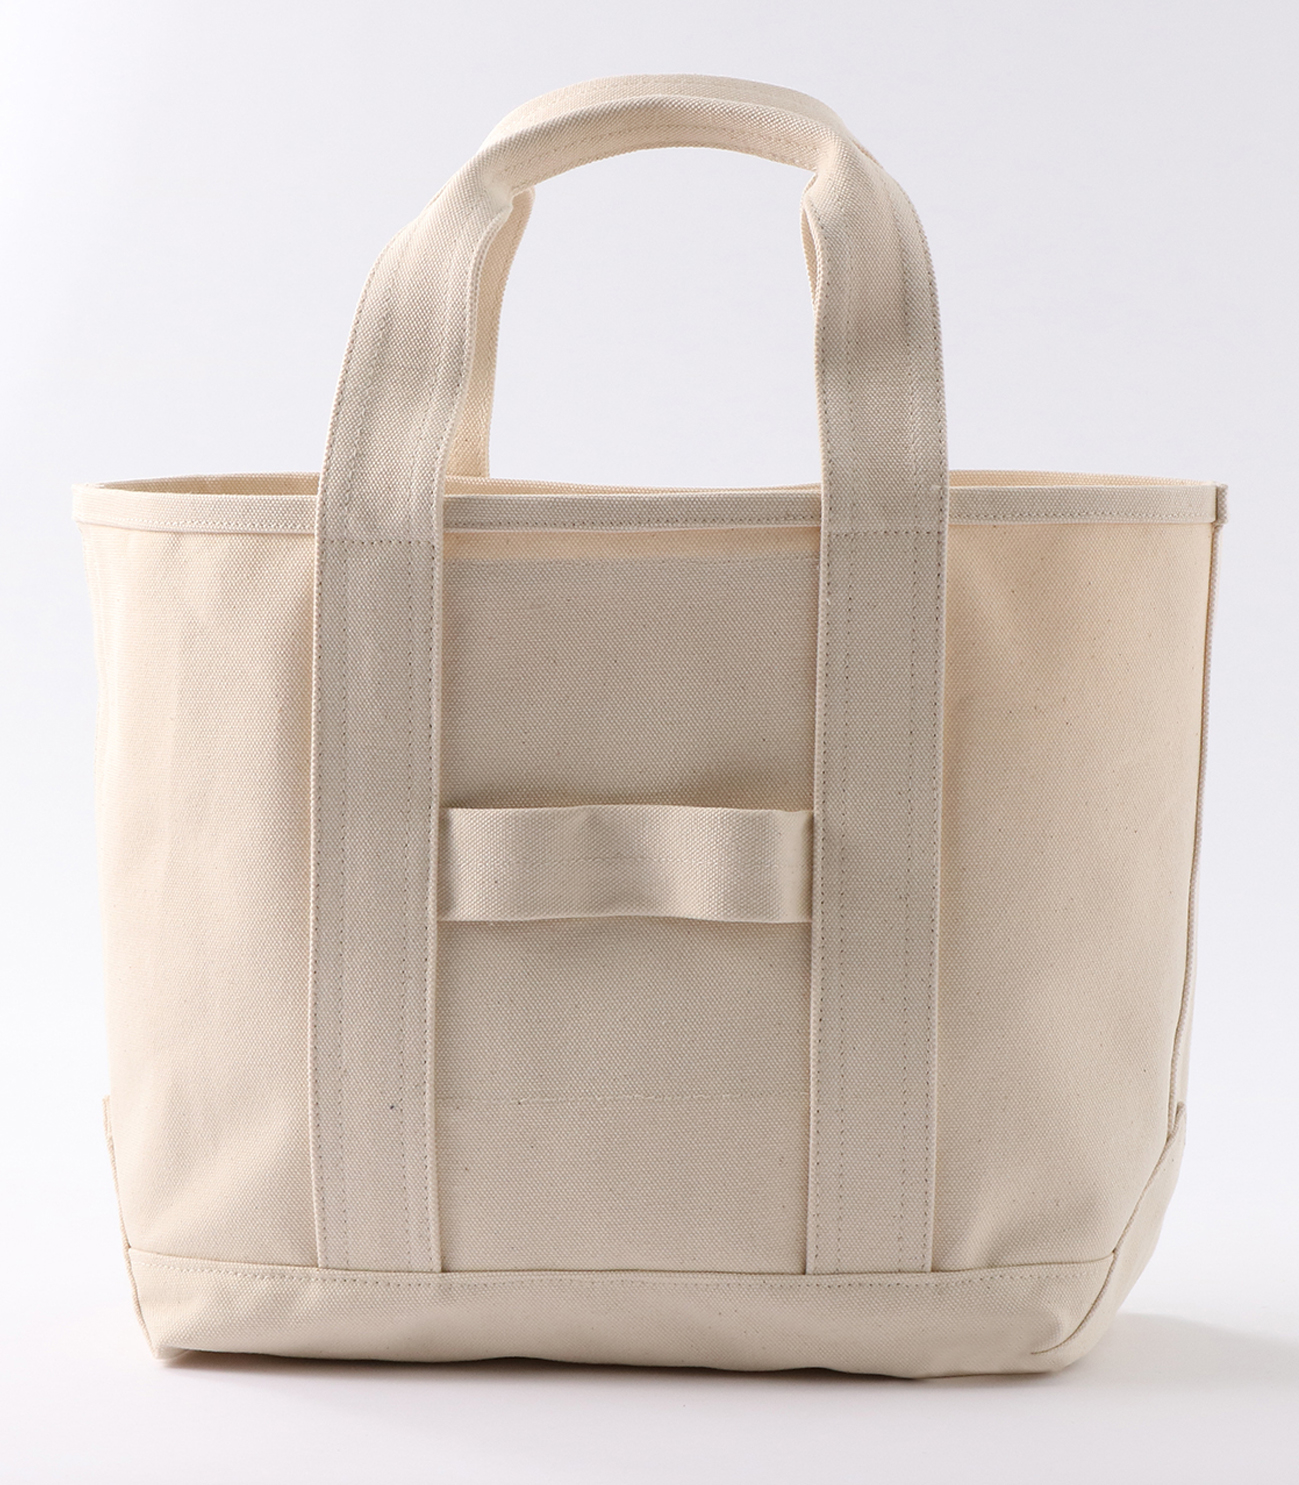 middle tote bag 詳細画像 white 3